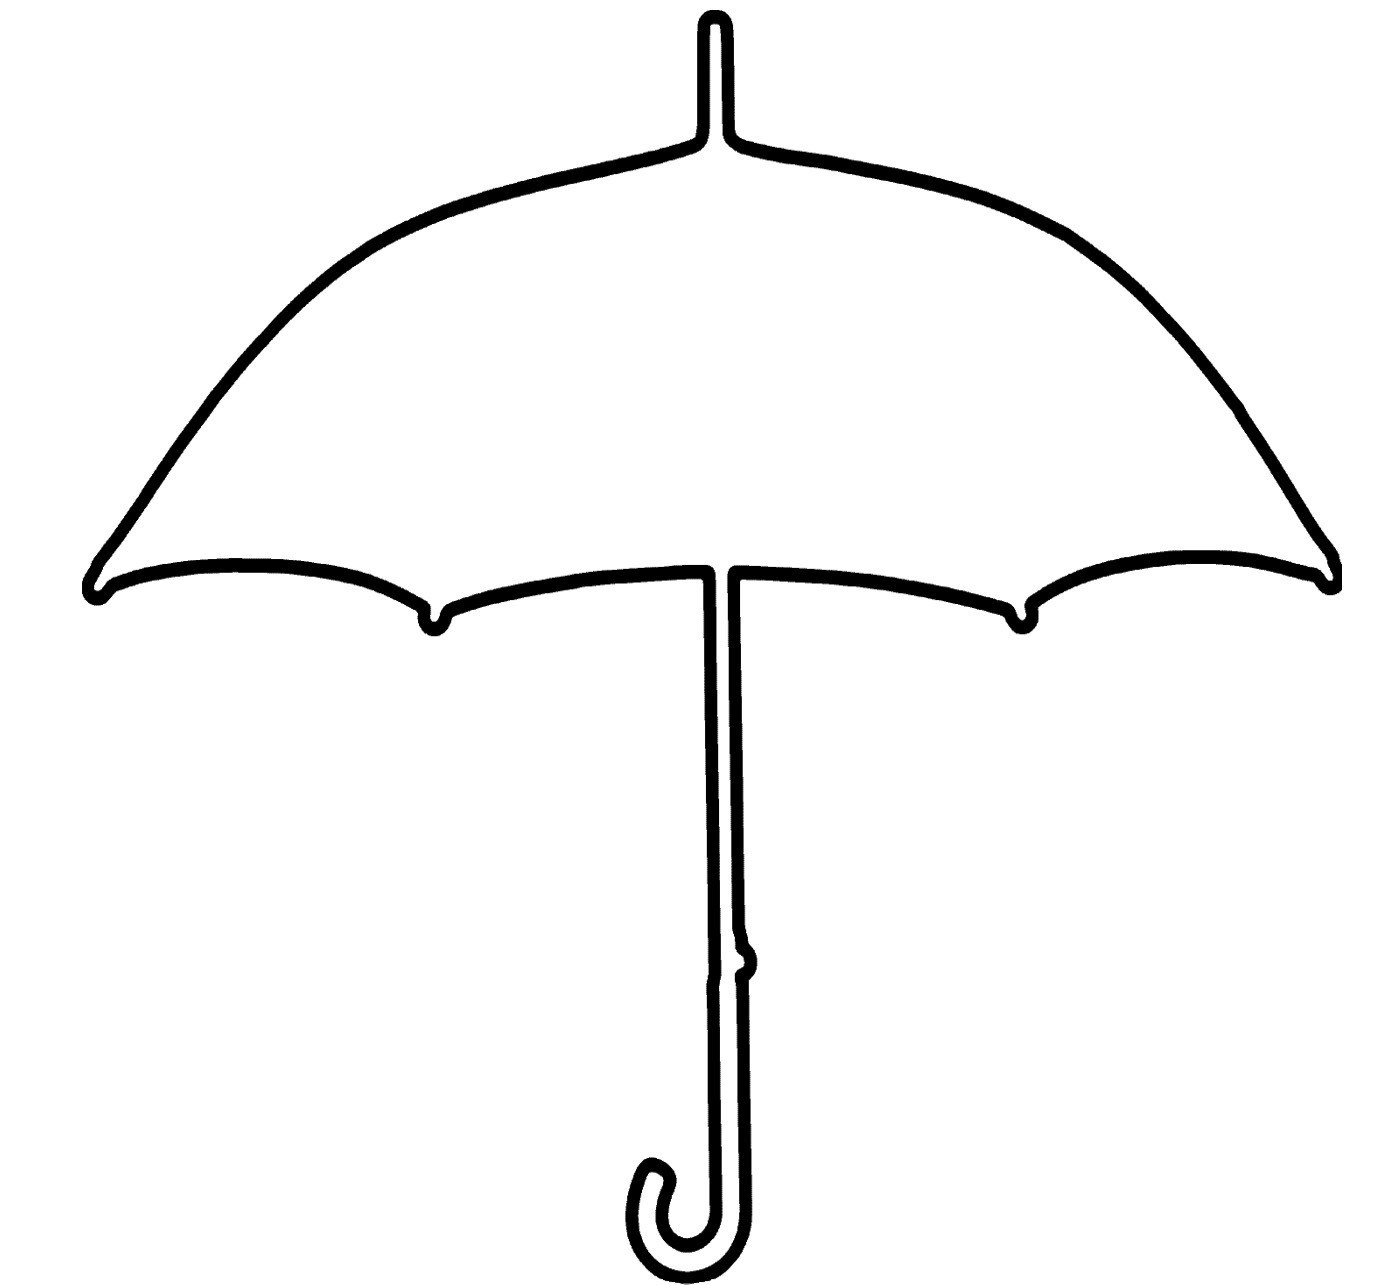 1397x1285 Umbrella Black And White Photos Of Umbrella Outline Clip Art